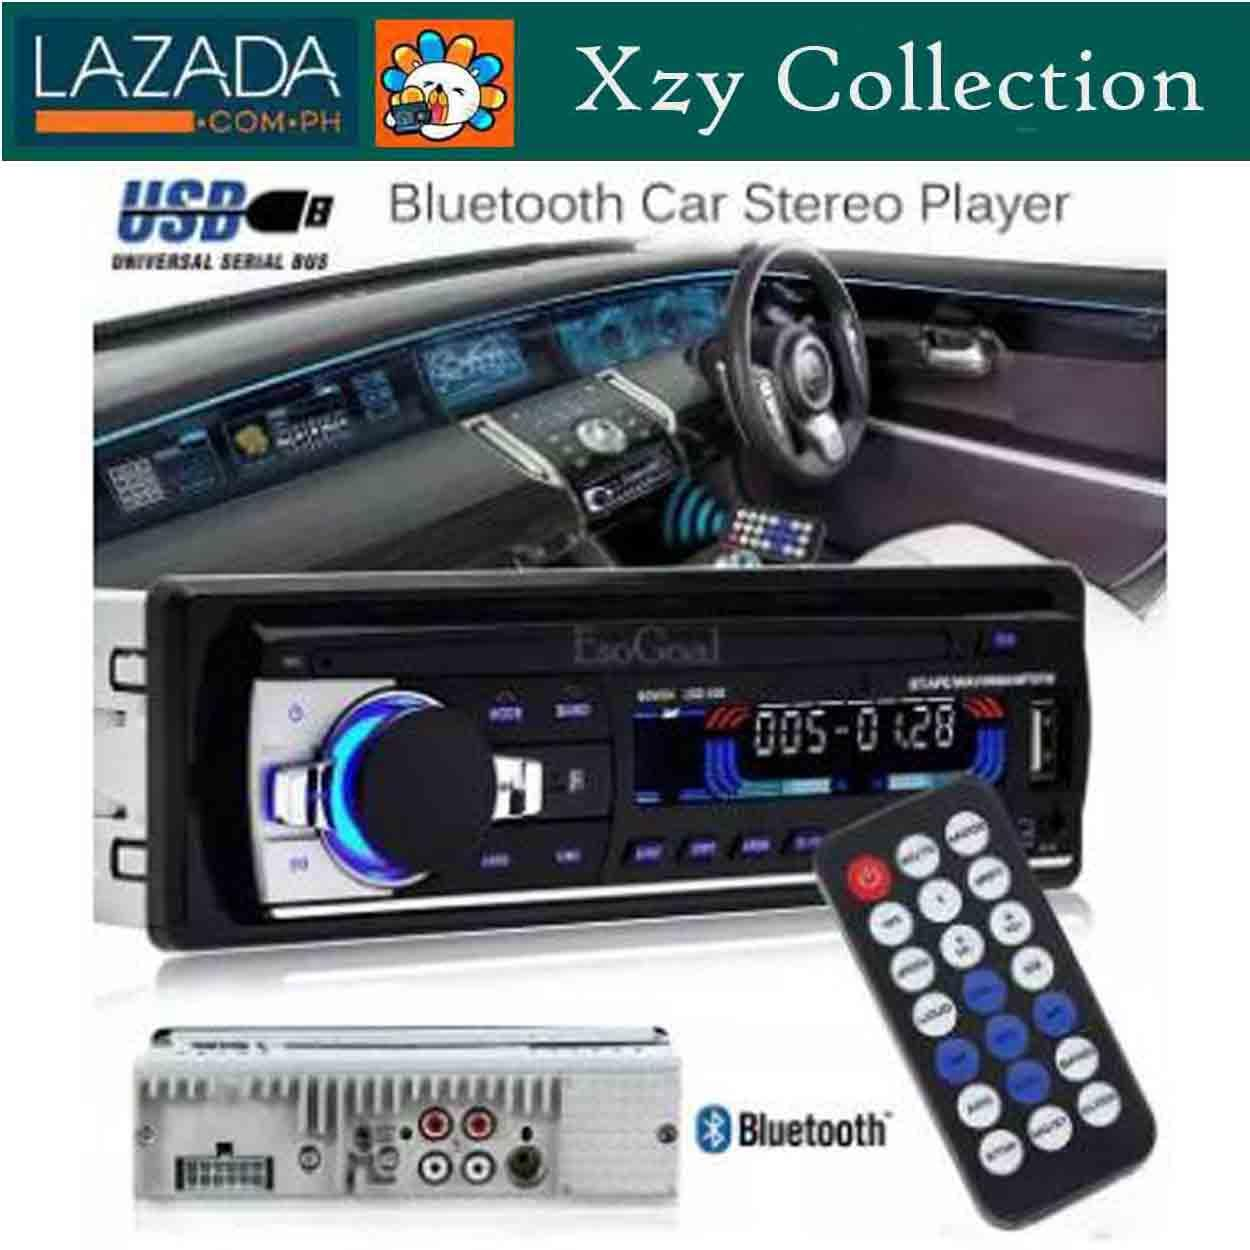 Car Stereo For Sale Cars Online Brands Prices Head Unit Wire Harness Same As Computer Bluetooth Wireless Digital Media Single Din In Dash Receivers Usb Sd